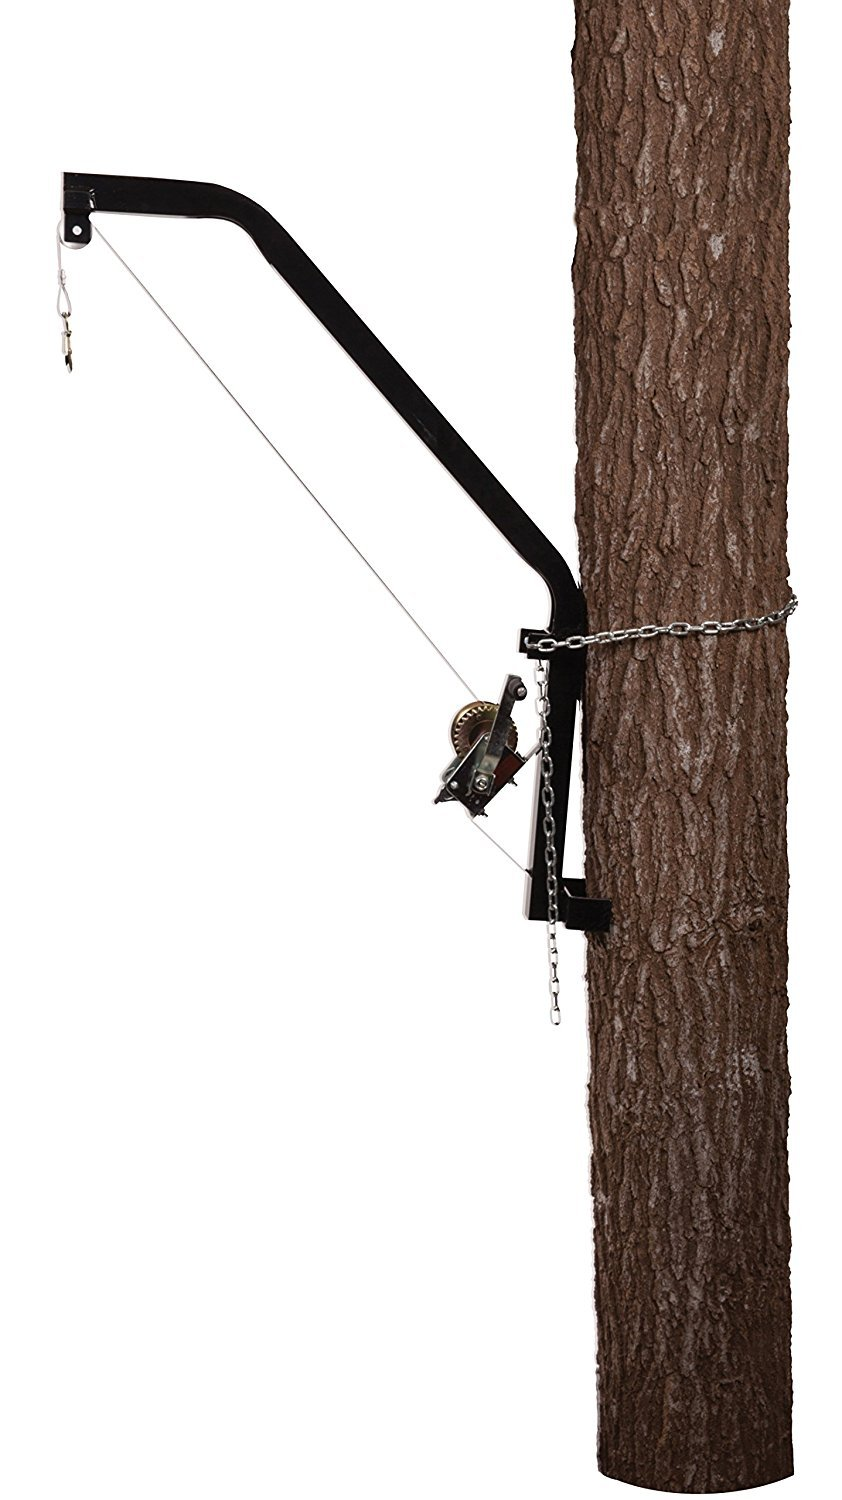 Moultrie Hanging Feeder Hoist | Chain-and-bracket Design | 300 lb. Capacity